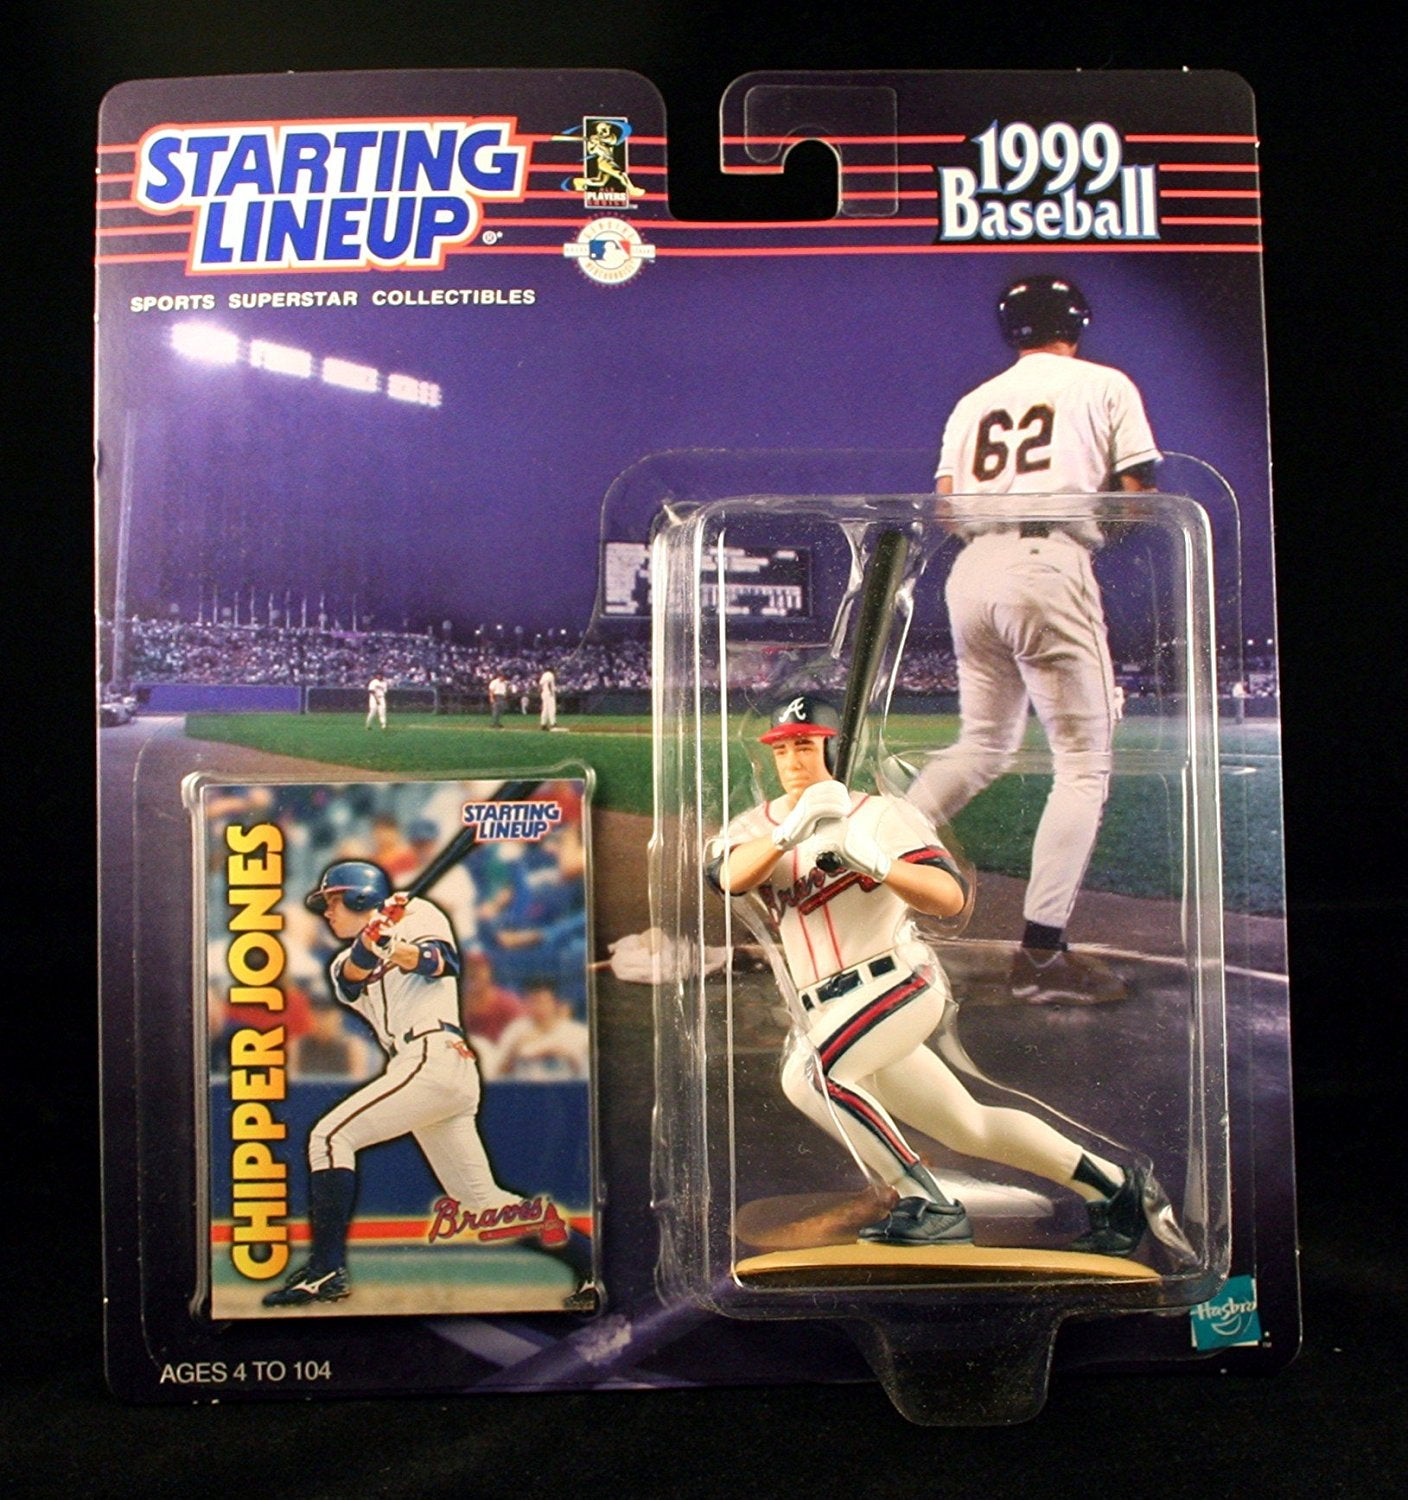 CHIPPER JONES / ATLANTA BRAVES 1999 MLB Starting Lineup Action Figure & Exclusive Collector Trading Card